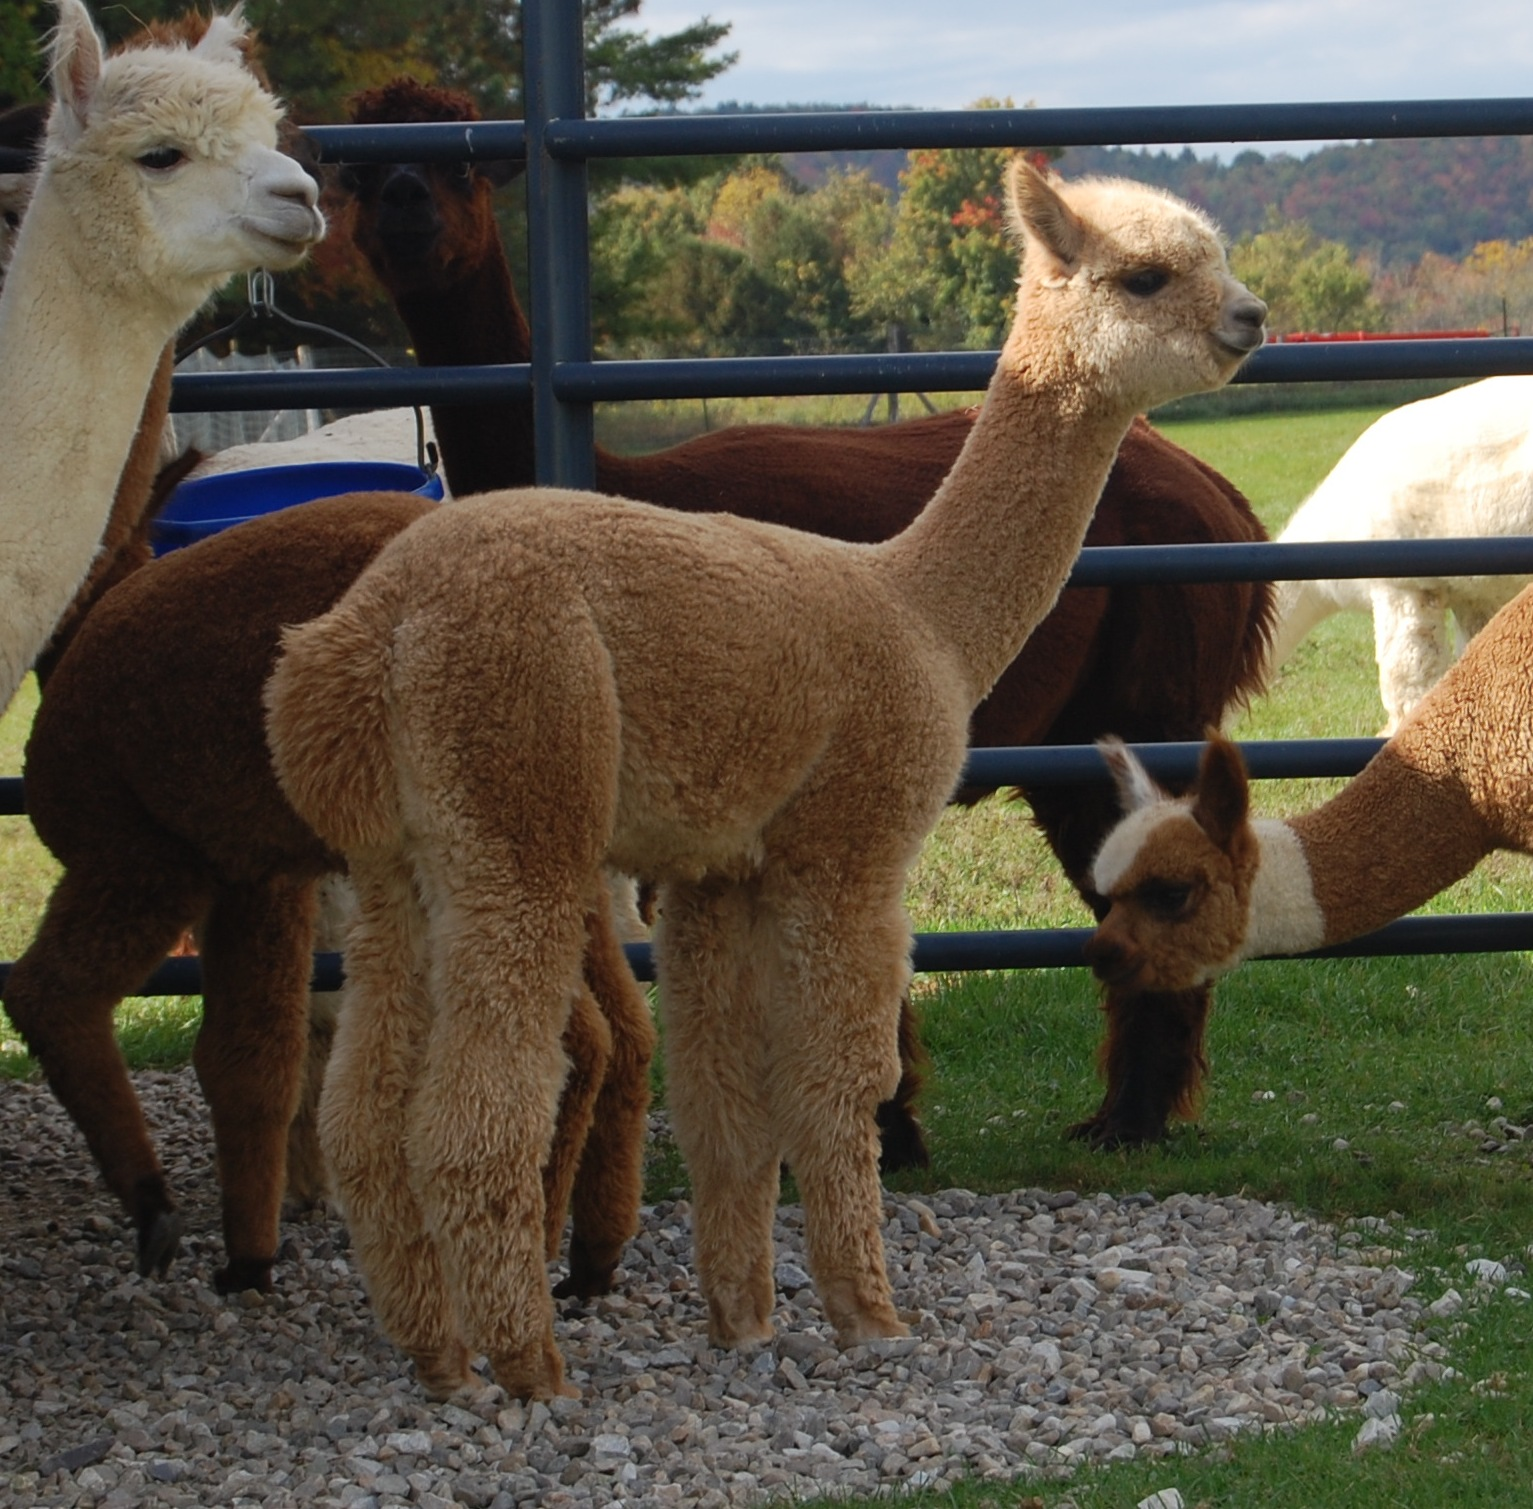 Archangel s essie maple view farm alpacas breeders of for Alpacas view farm cuisine